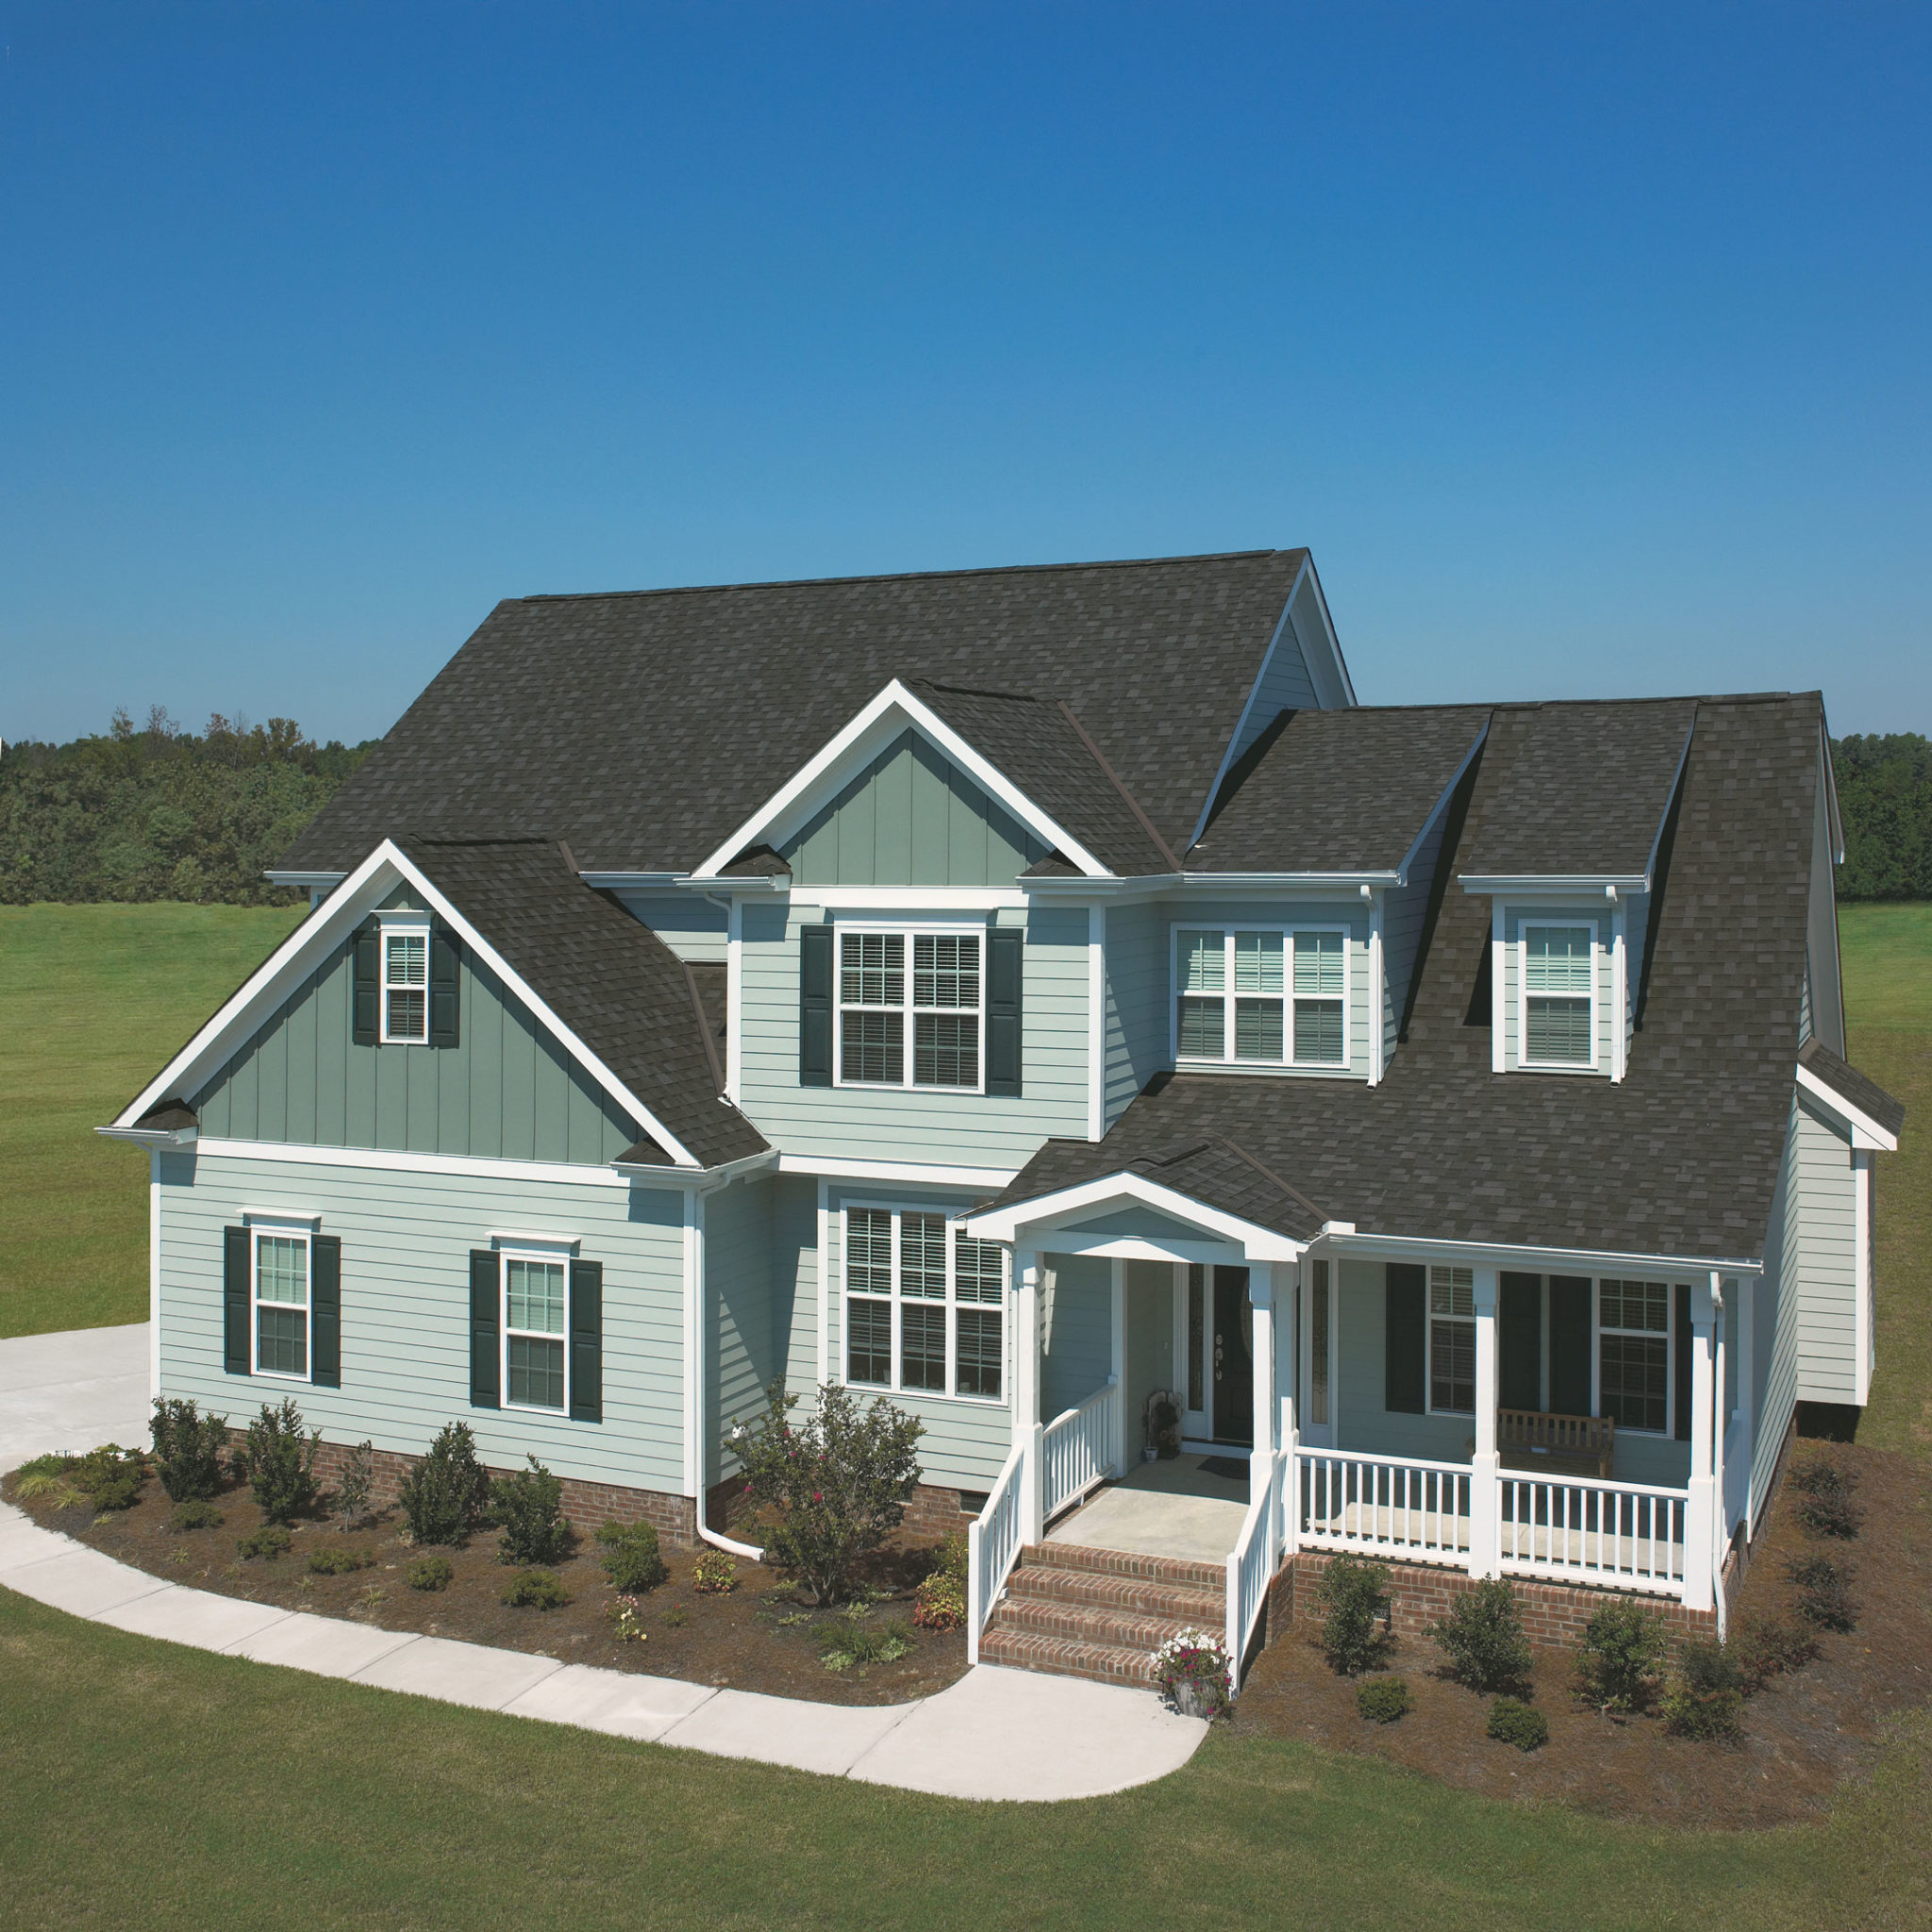 Durable and formulated to provide contrast and dimension, they deliver a combination of color and depth that complements any roof. How To Pick Shingle Colors 17 Facts Tips Courtesy Of Iko Roofing